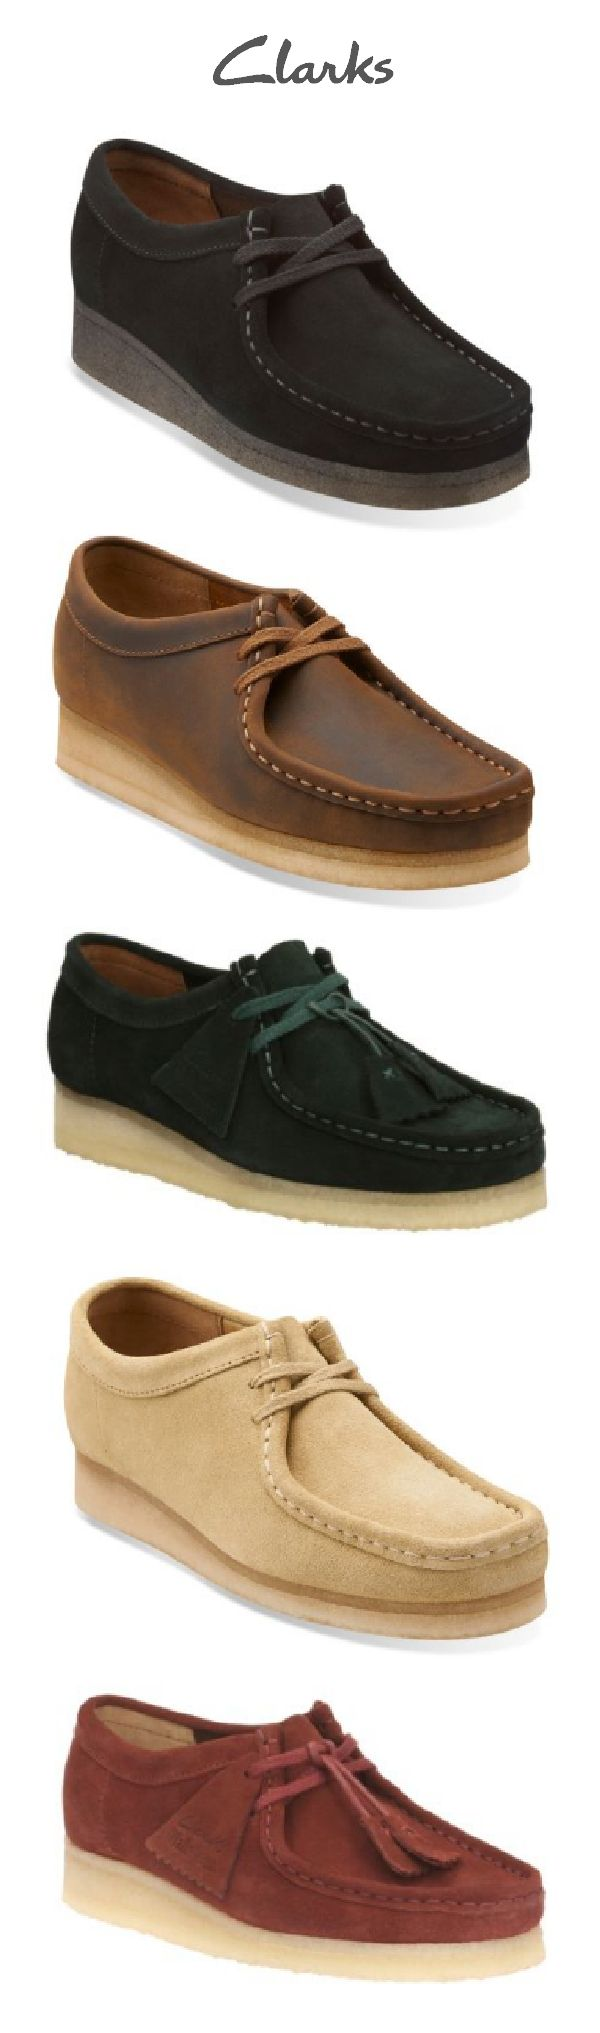 The Wallabee has become an iconic classic in the Clarks Originals® Collection and for good reason! The comfortable fall shoe is a structured take on a cozy moccasin and features clean and simple lines in a variety of suede and leather finishes. Choose your favorite version of this lace-up classic shoe and add it to your fall wardrobe wish list!